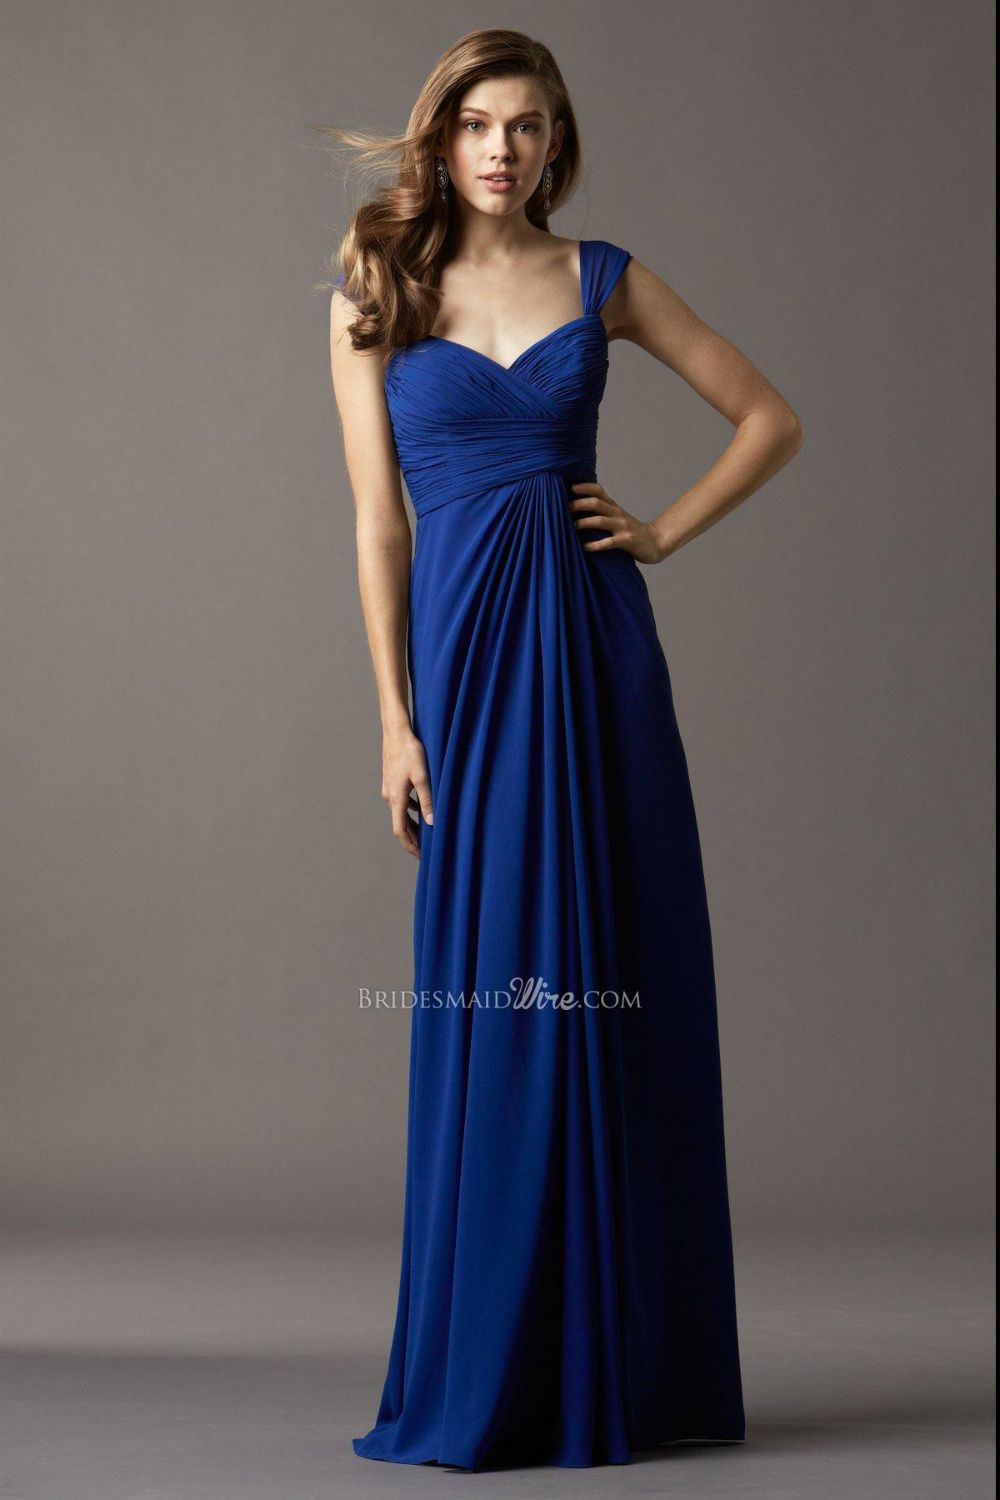 Discount bridesmaid dresses online now at bridesmaidwire discount bridesmaid dresses online now at bridesmaidwire ombrellifo Gallery